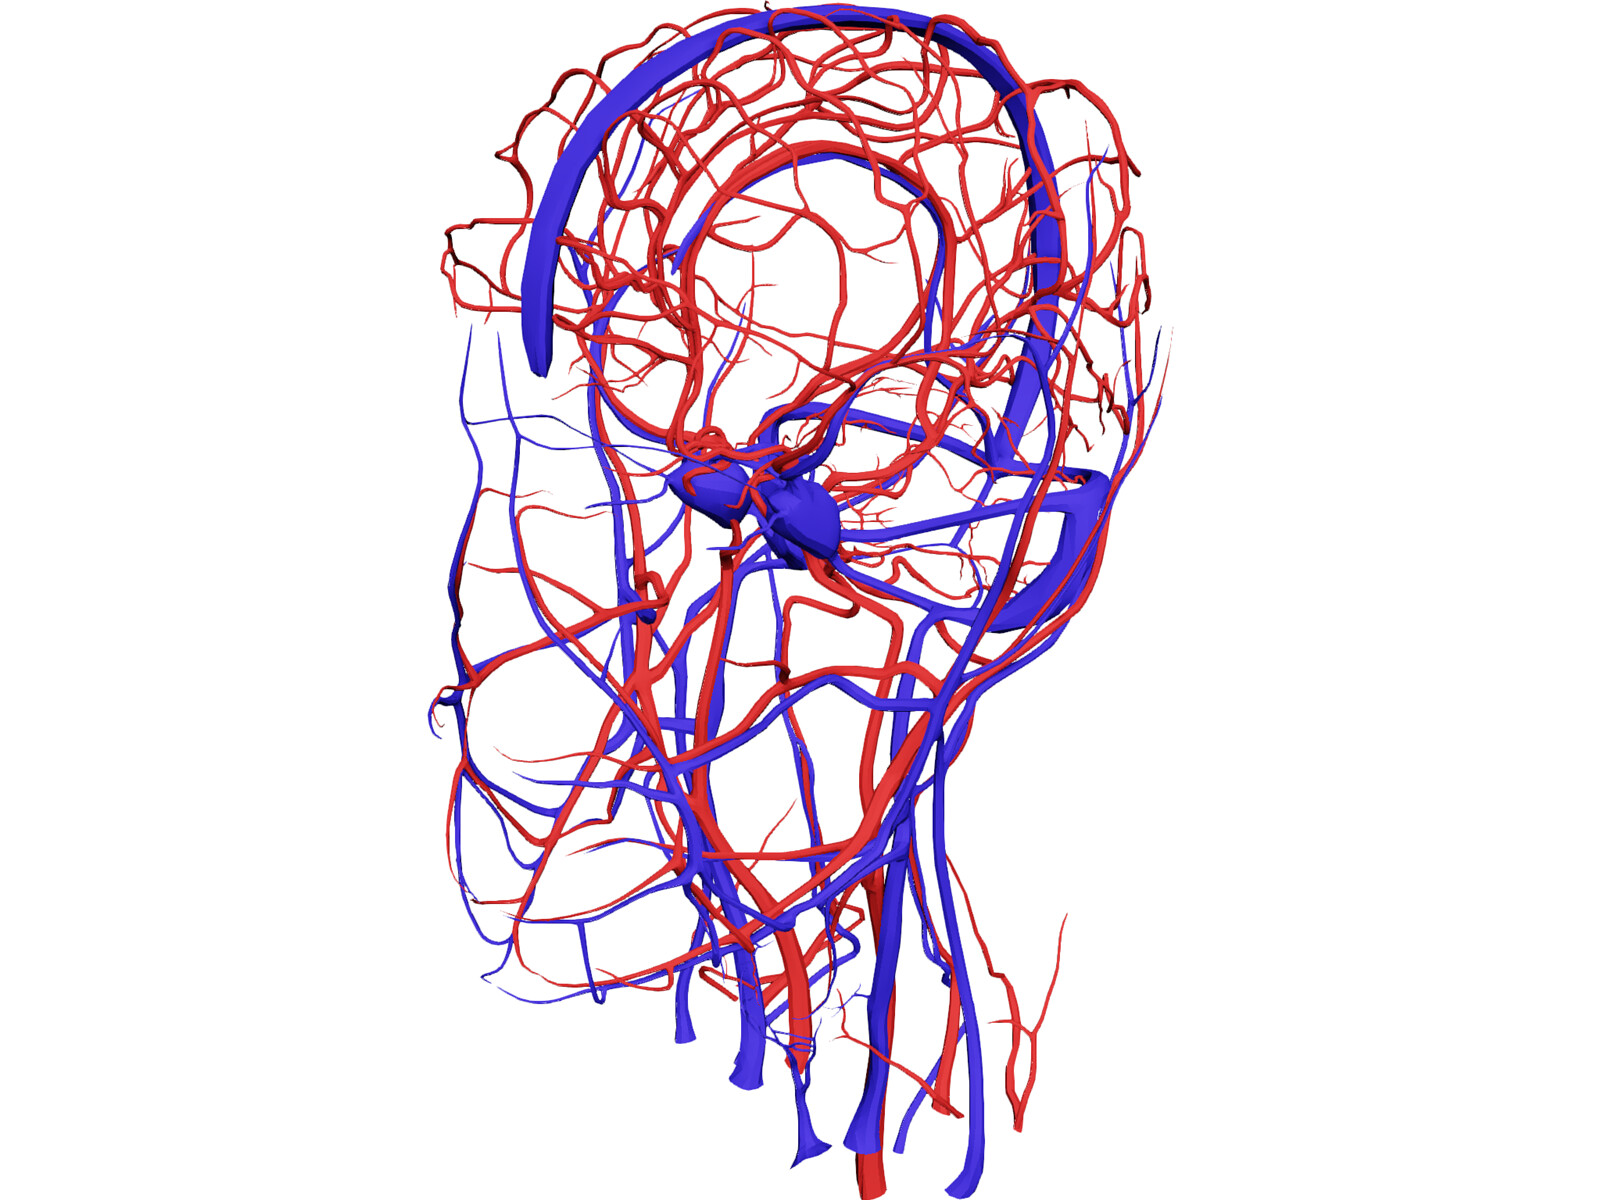 Systemic Circulation of Head